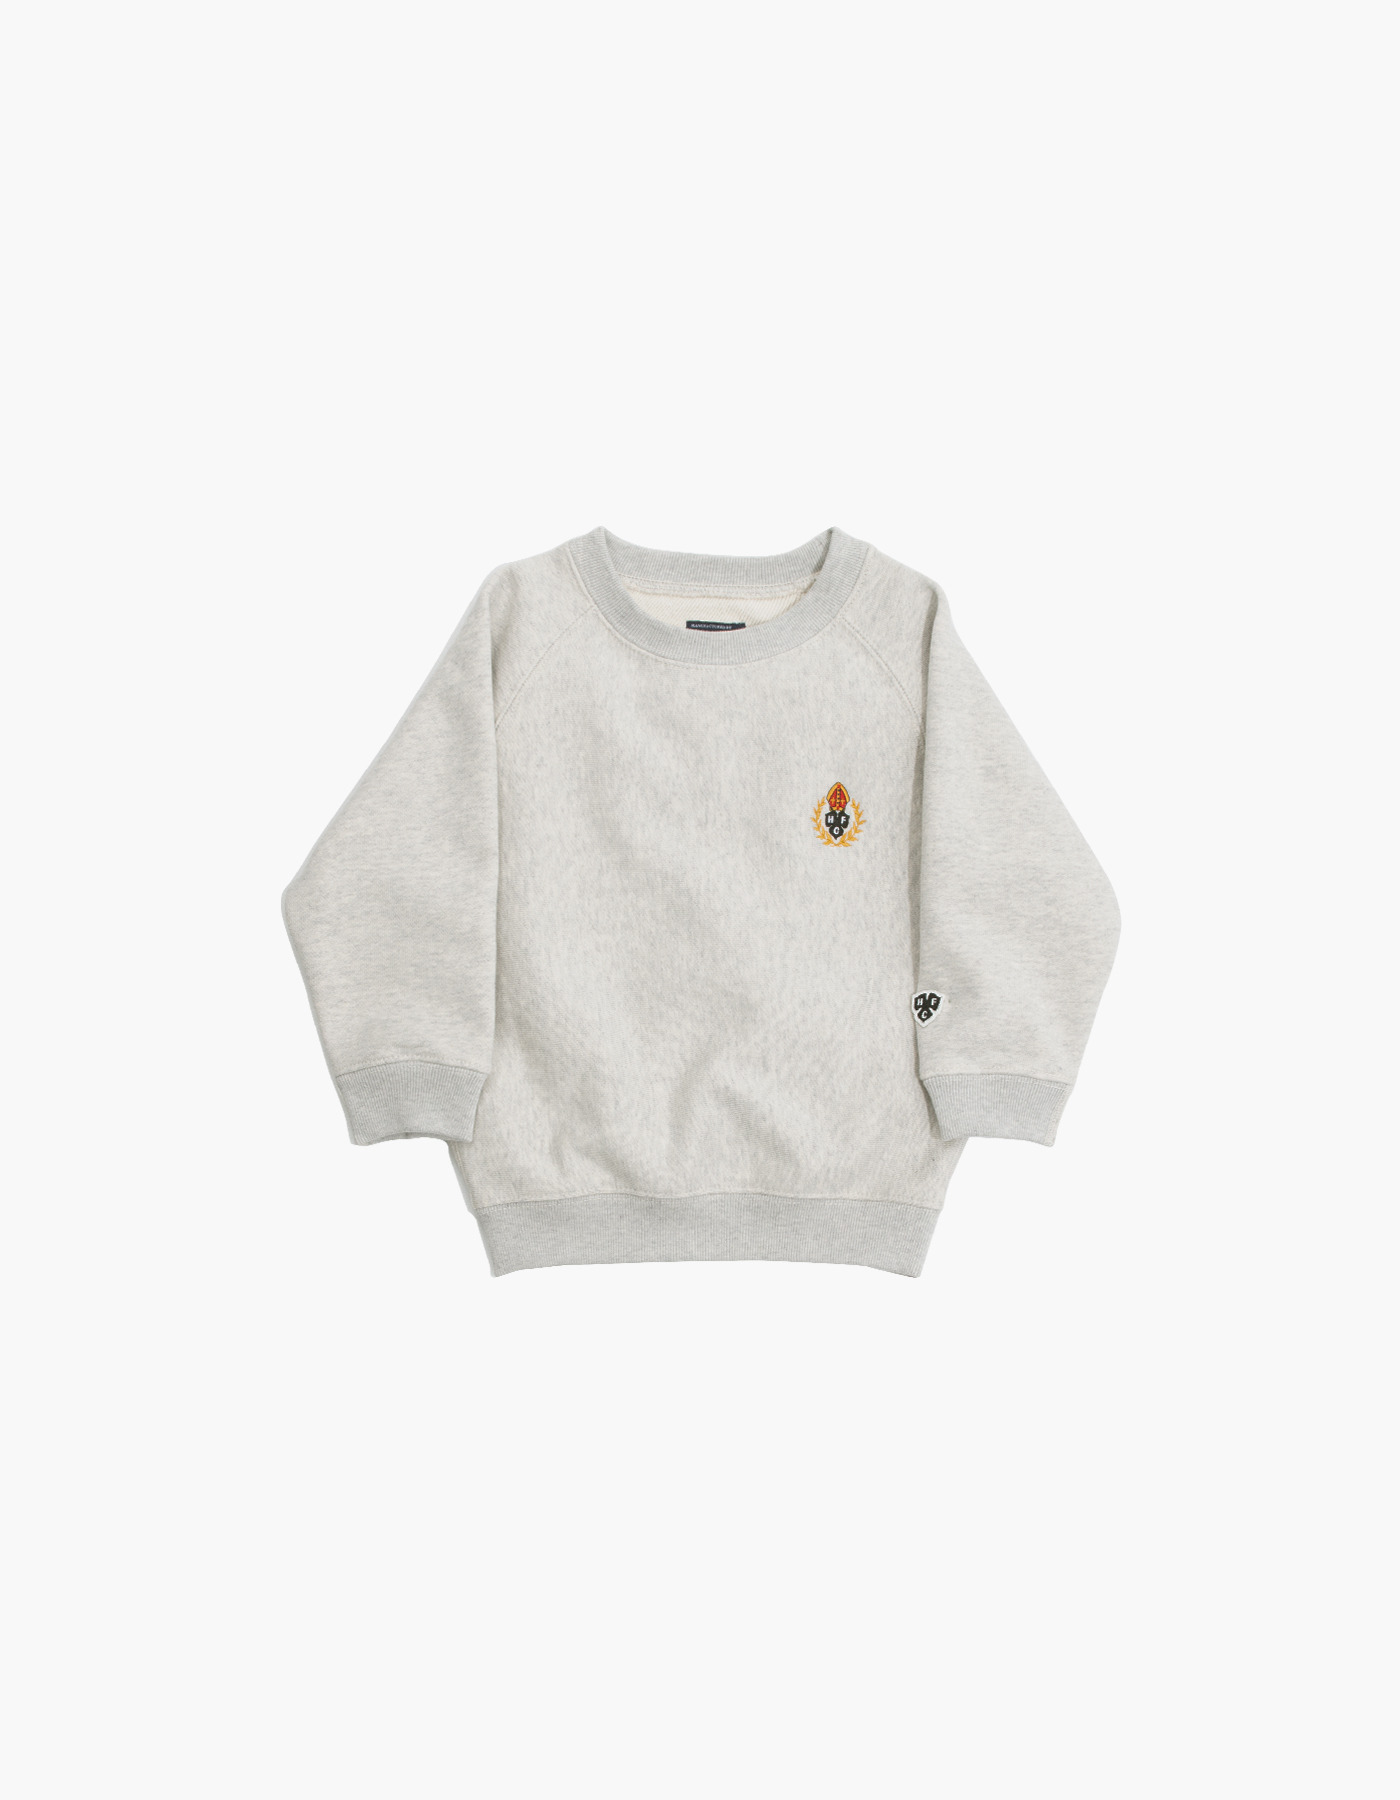 231 KIDS HFC CREWNECK / M.GREY (1%)